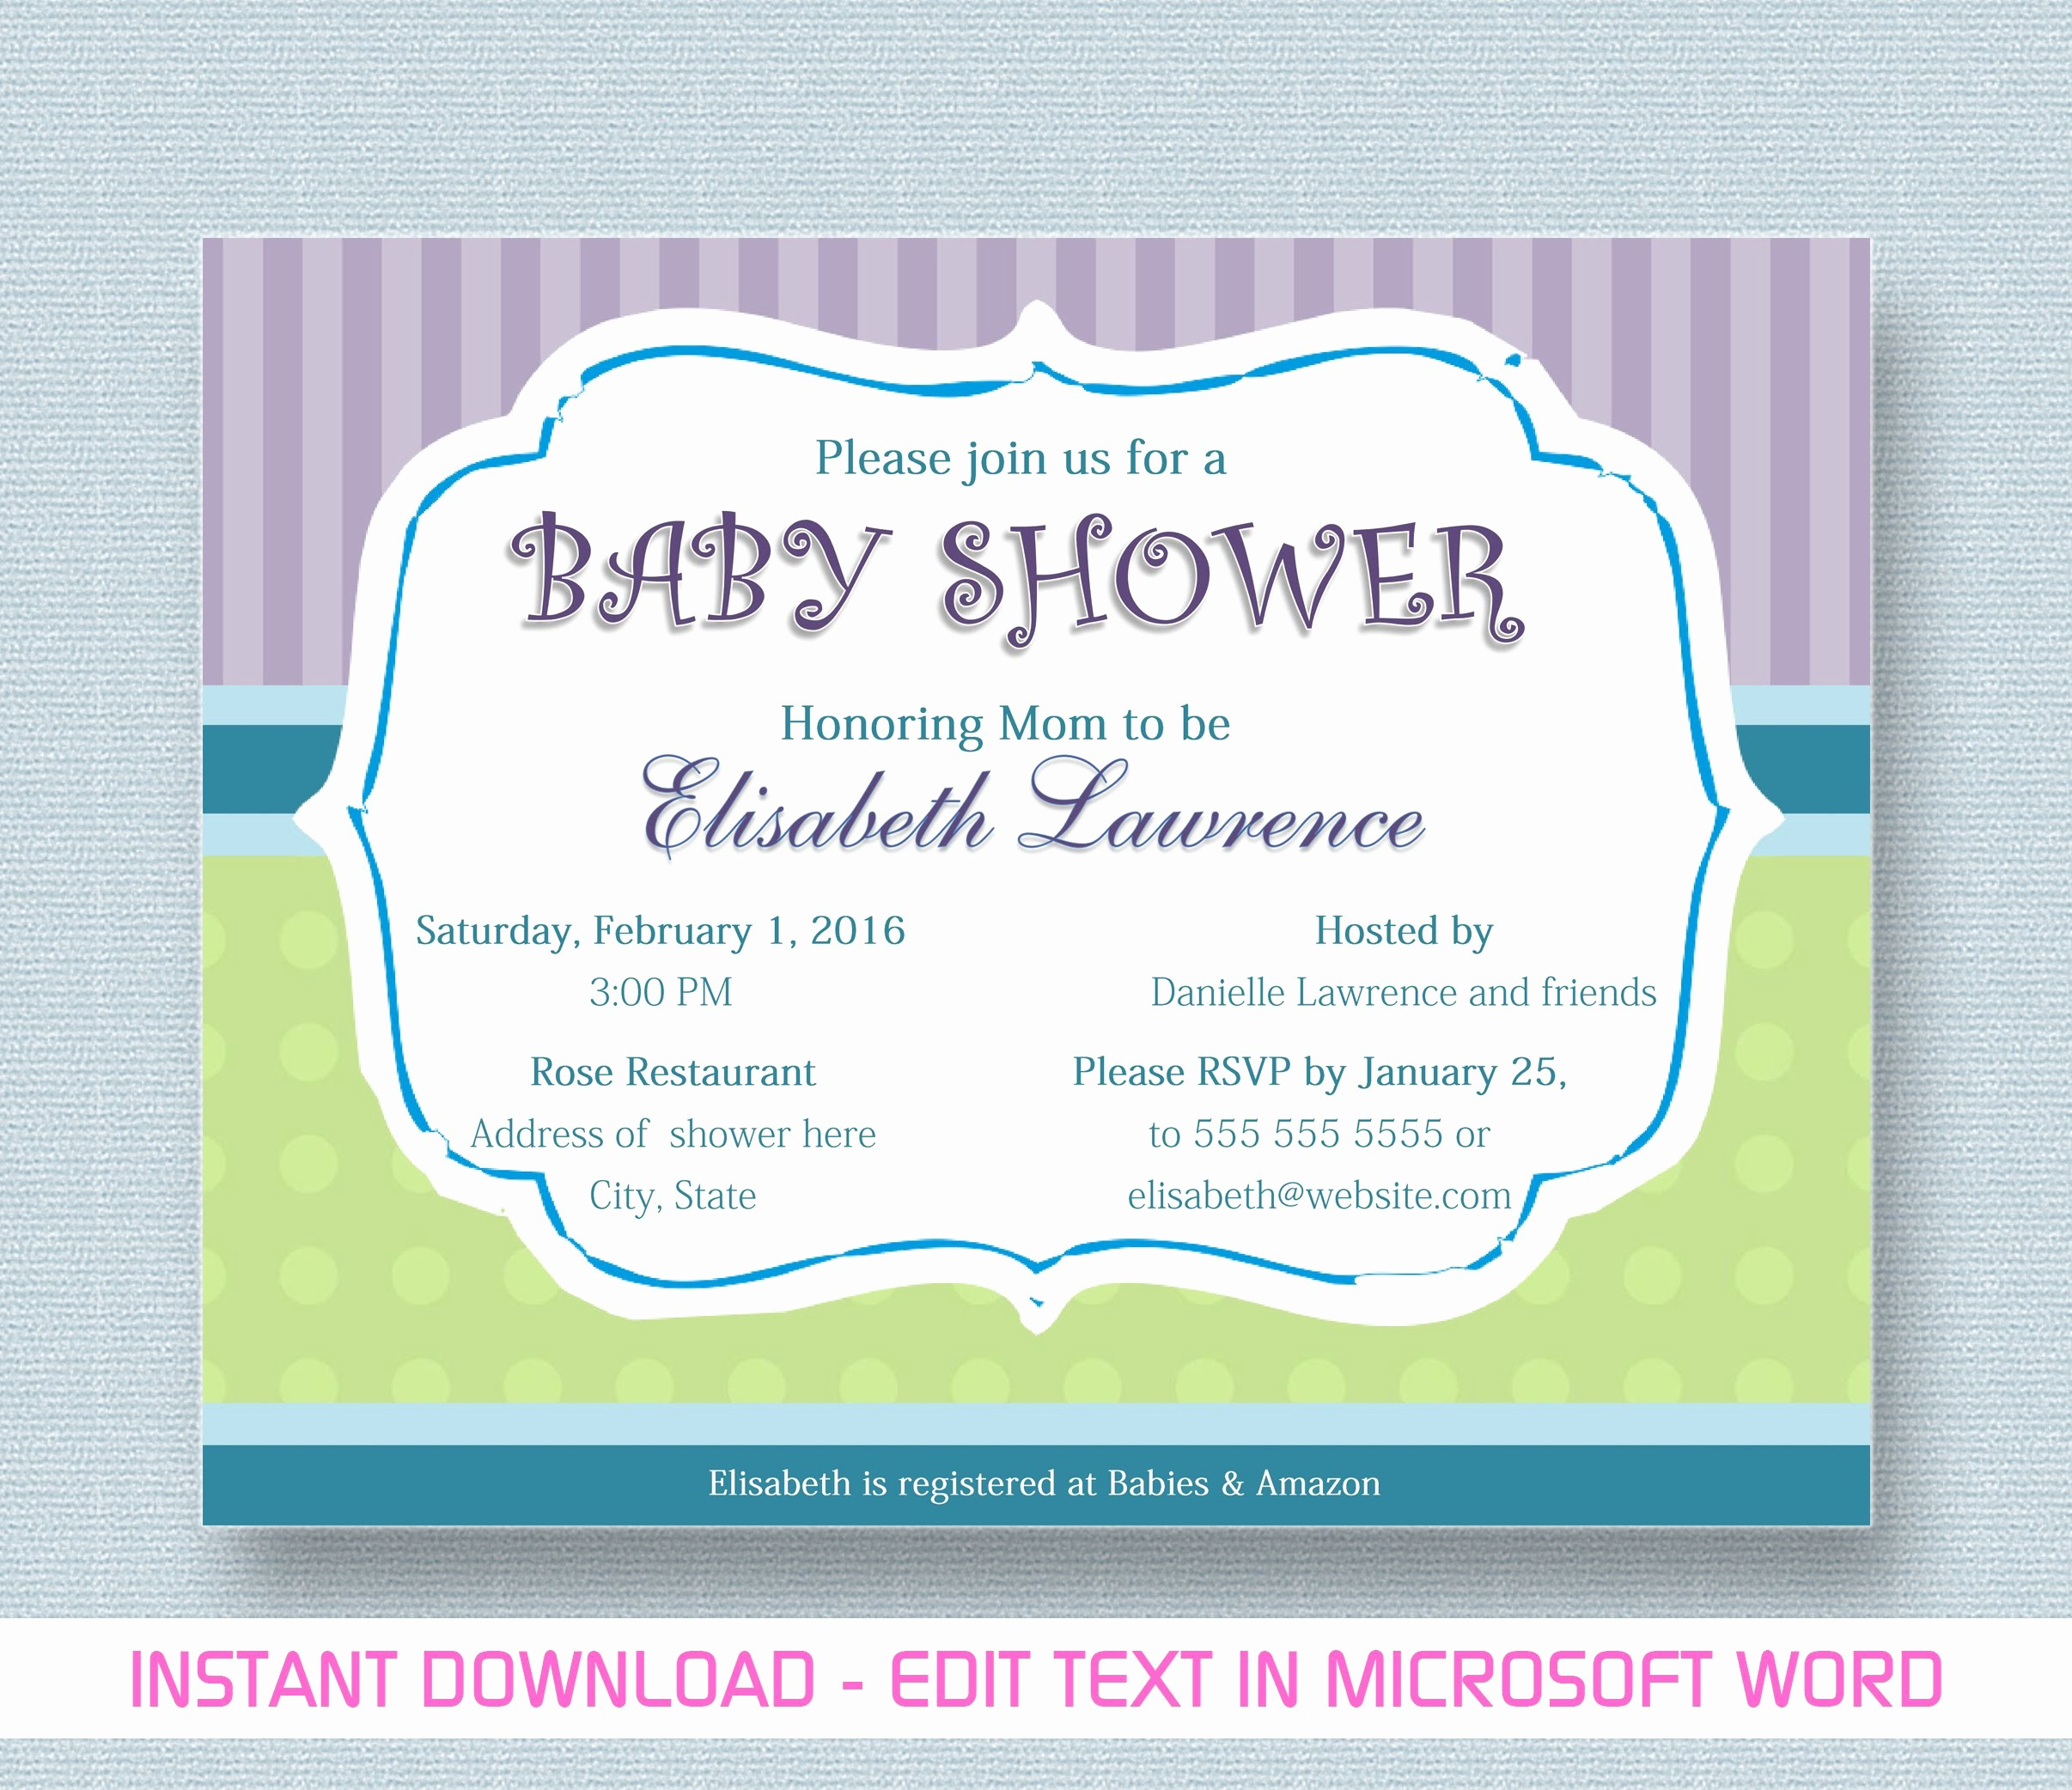 Making Invitations On Microsoft Word Inspirational Baby Shower Invitation for Microsoft Word